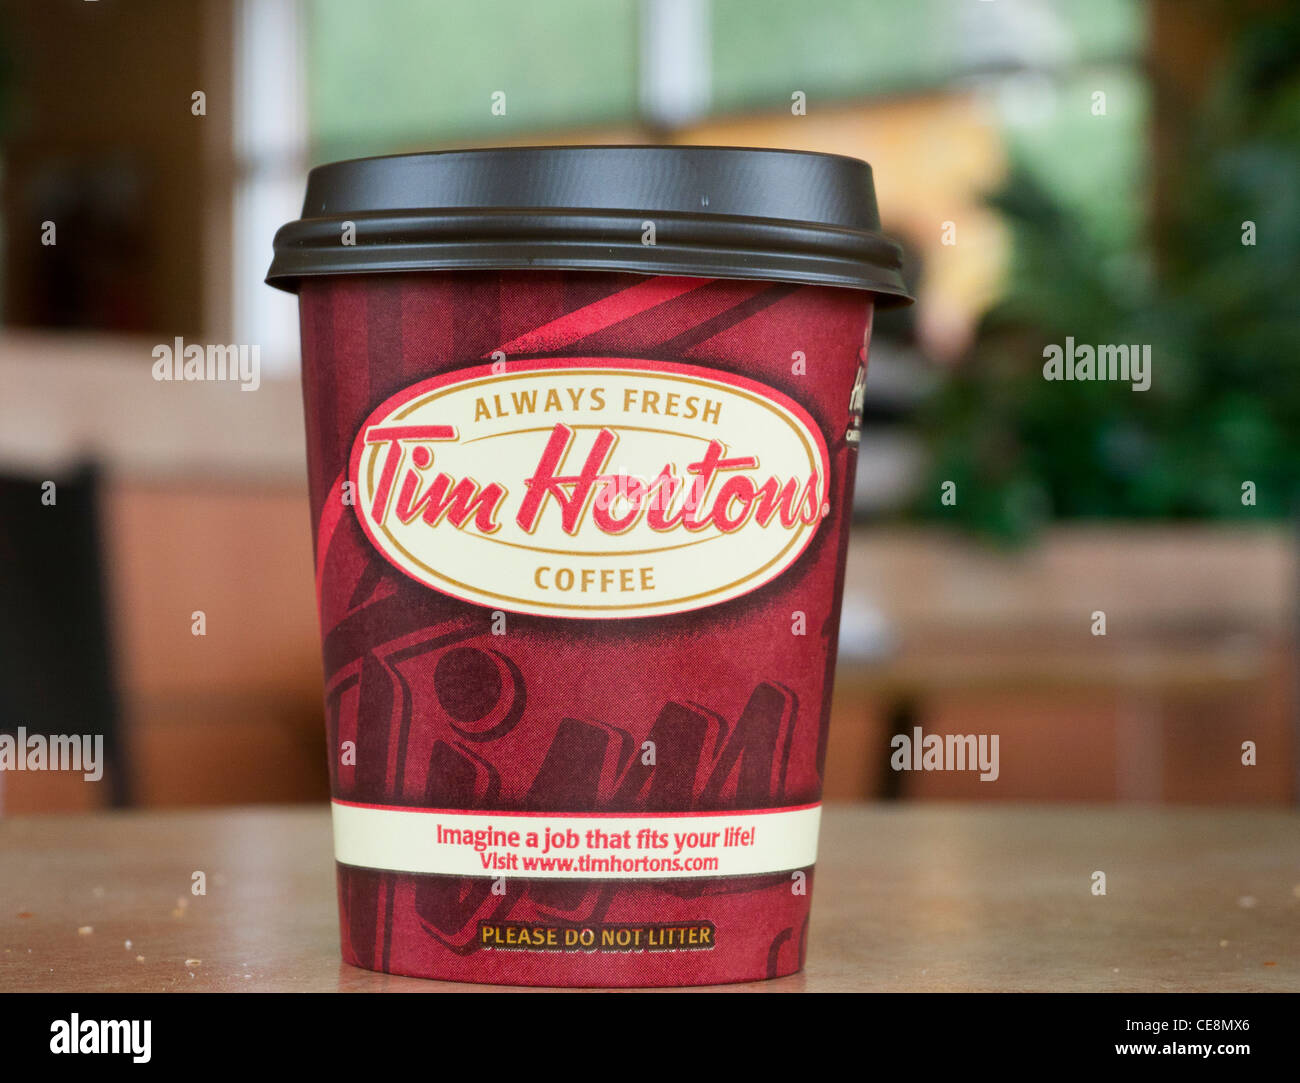 Tim Hortons coffee cup inside a restaurant in Canada - Stock Image